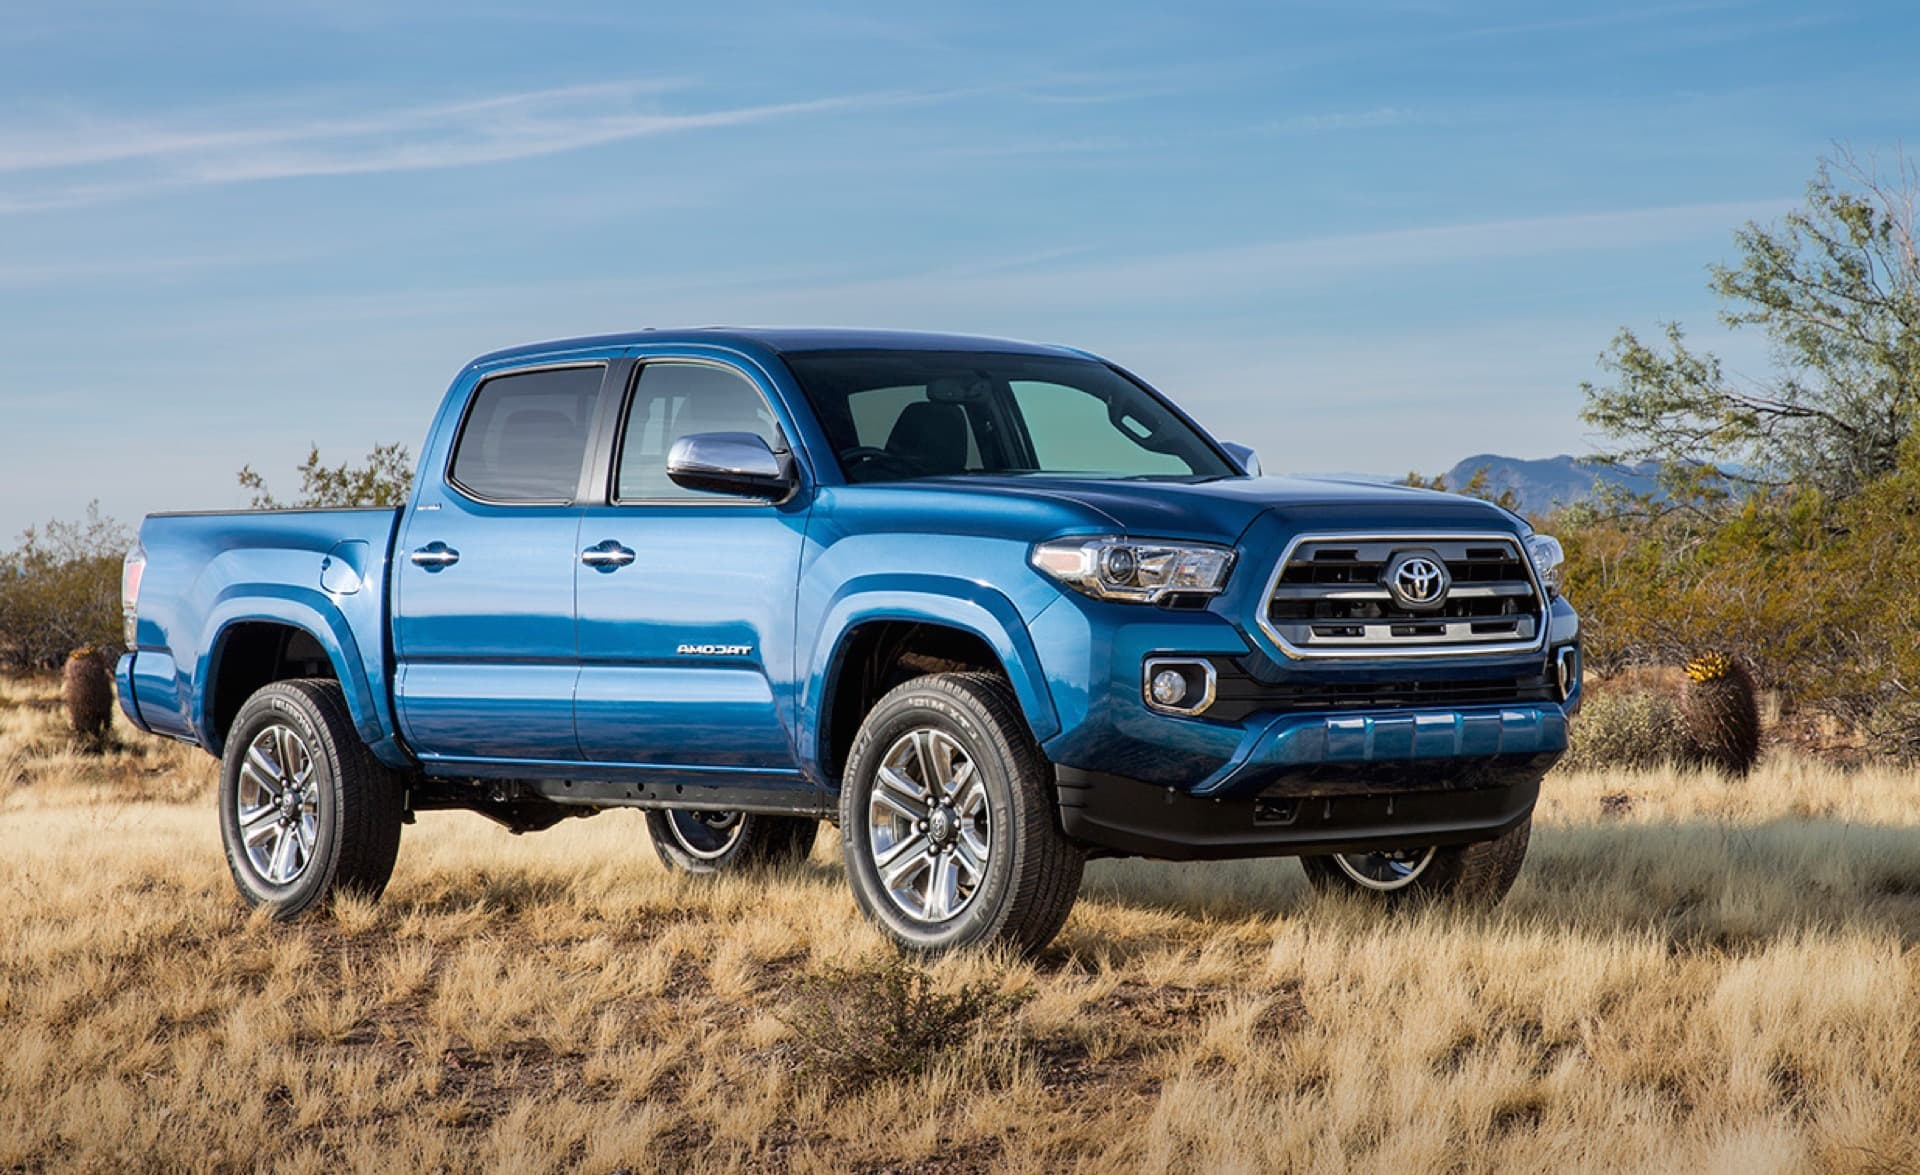 Toyota Tacoma Pro >> 17+ Toyota Tacoma 2016 wallpapers HD High Resolution Download